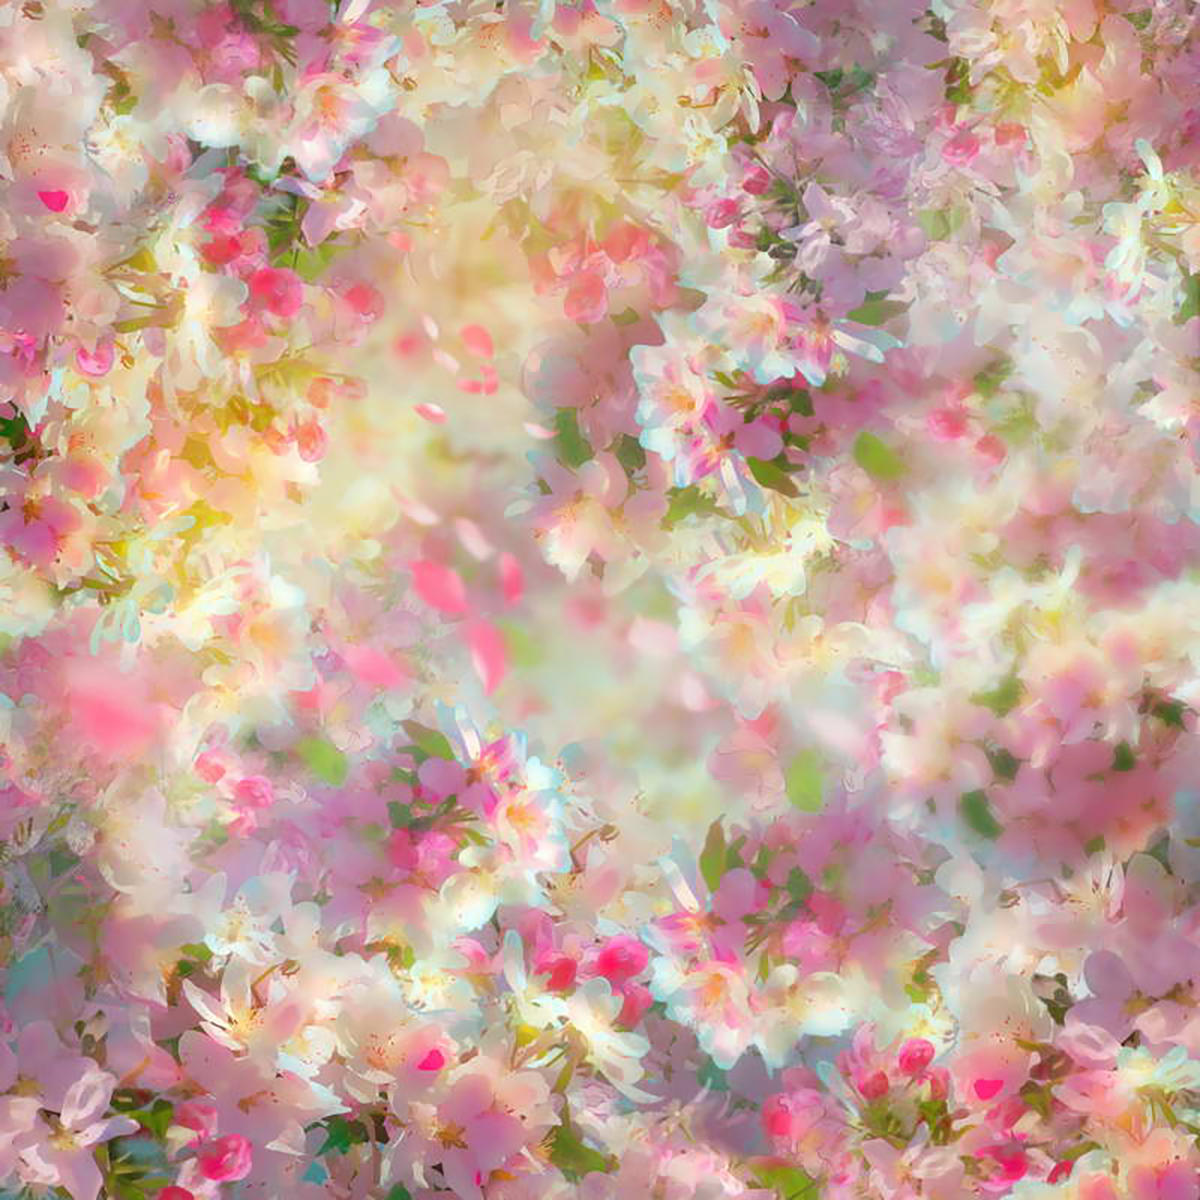 Allenjoy Photography Backdrops Romantic Aesthetic Pink Flowers Photo